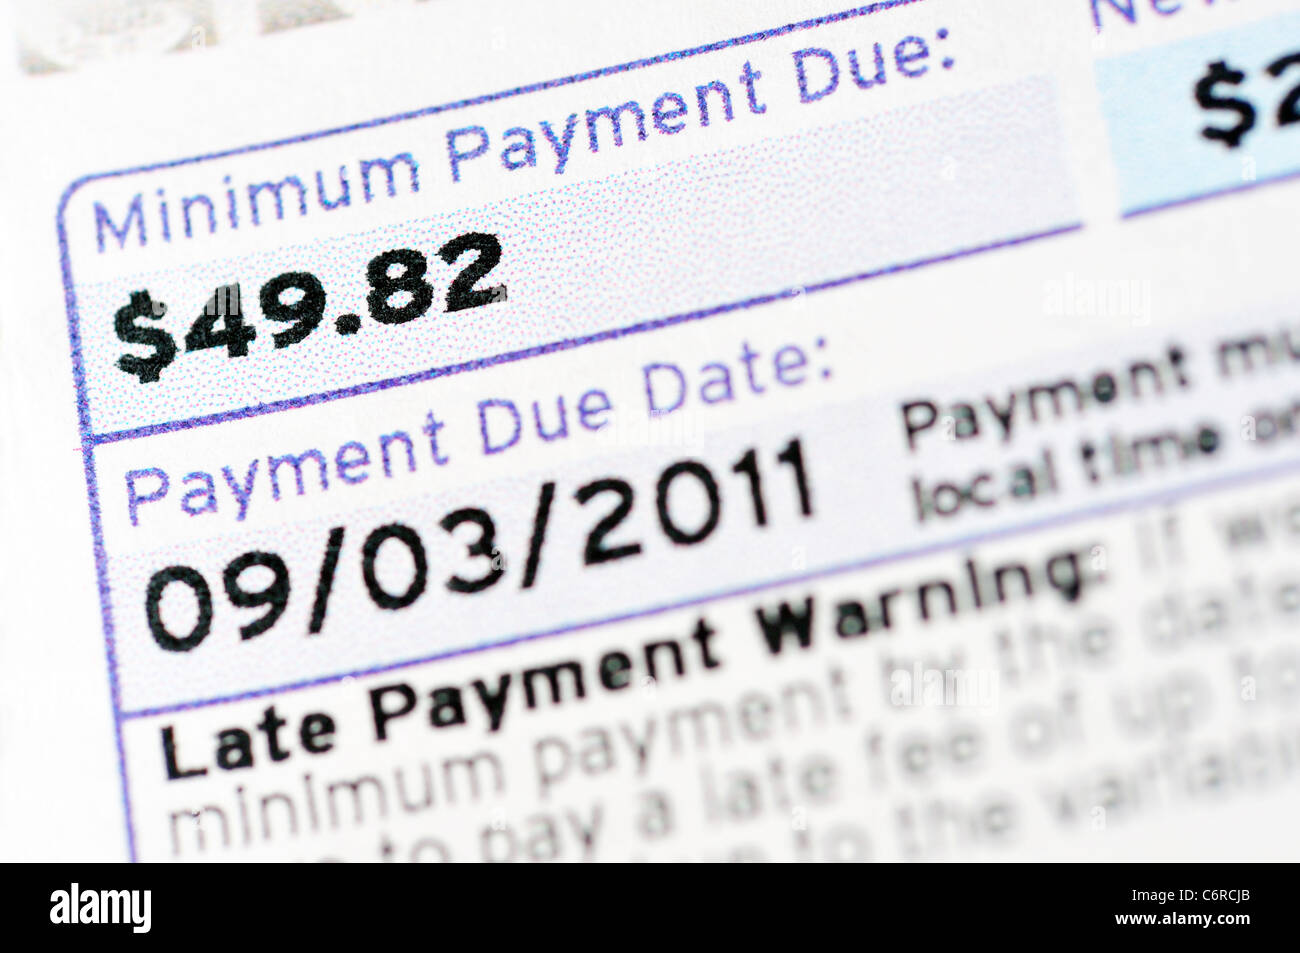 Credit card bill statement and Minimum payment due Stock Photo ...